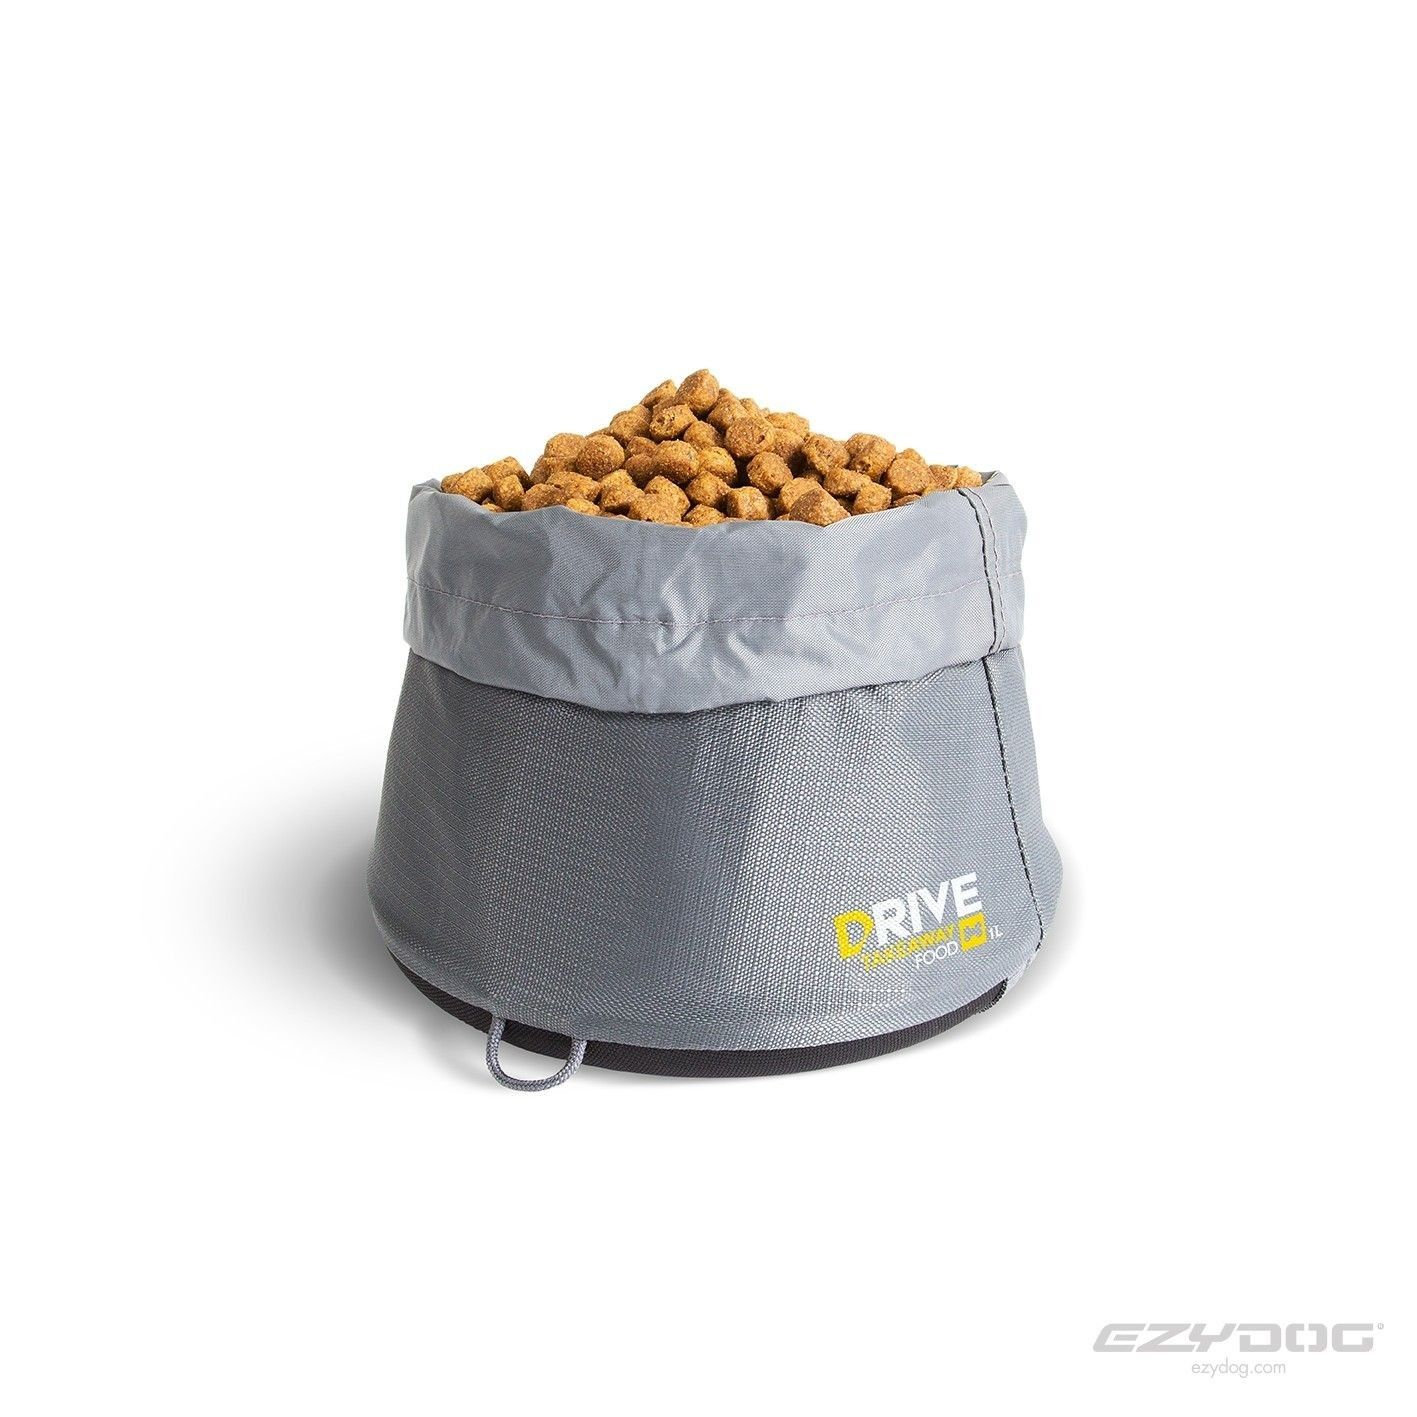 Drive Takeaway Food Bowl